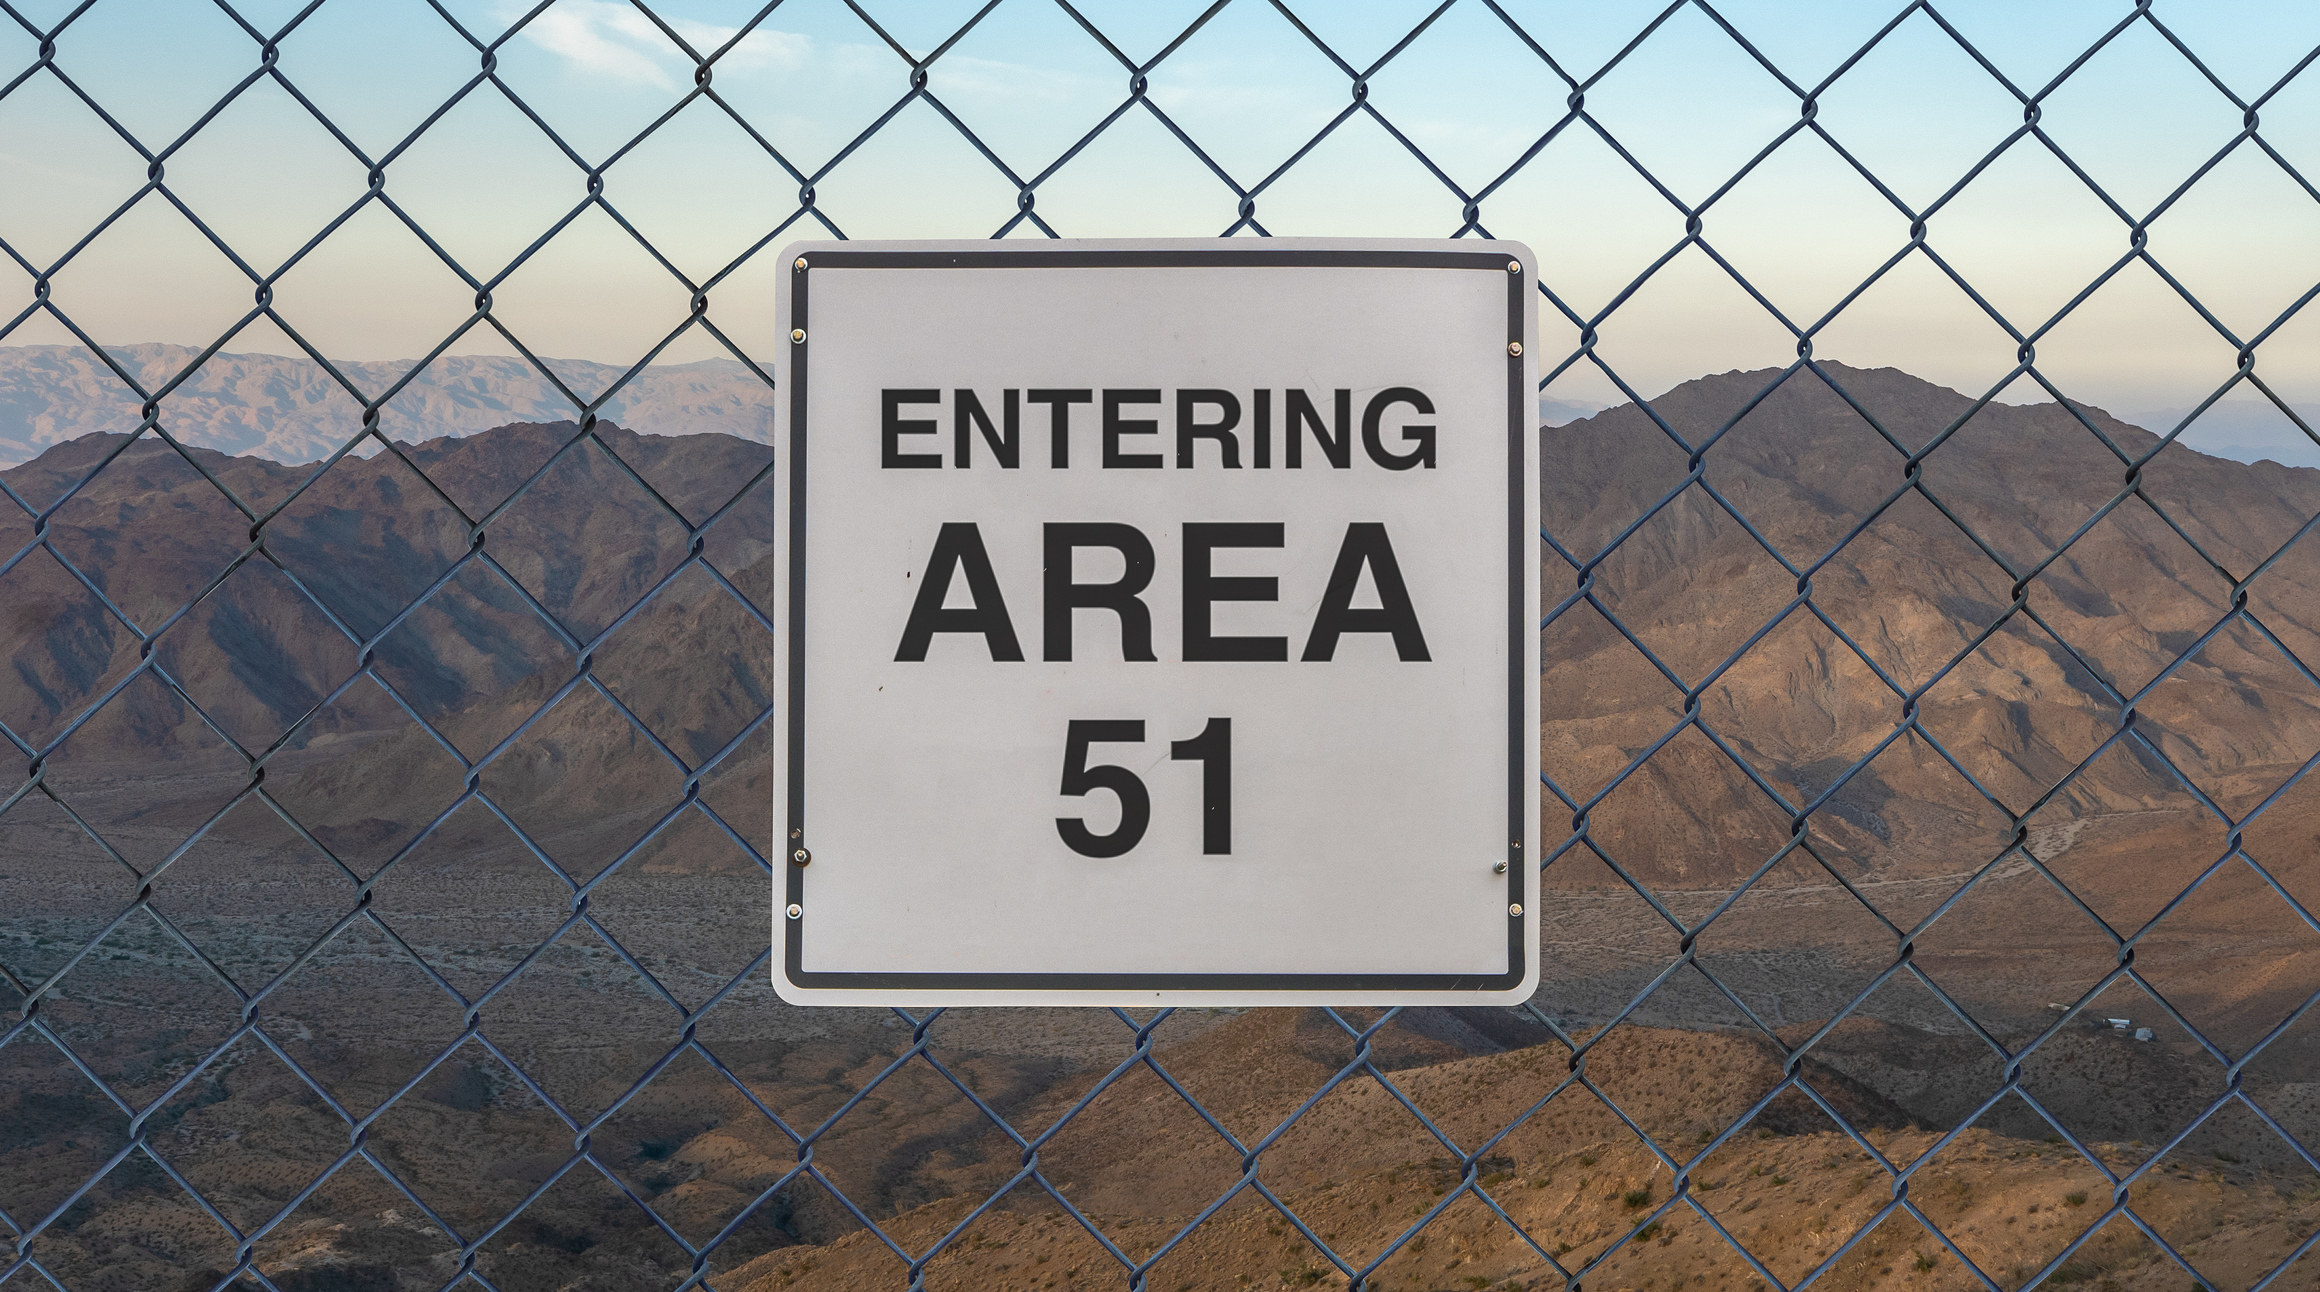 Area 51 sign on a chain-link fence